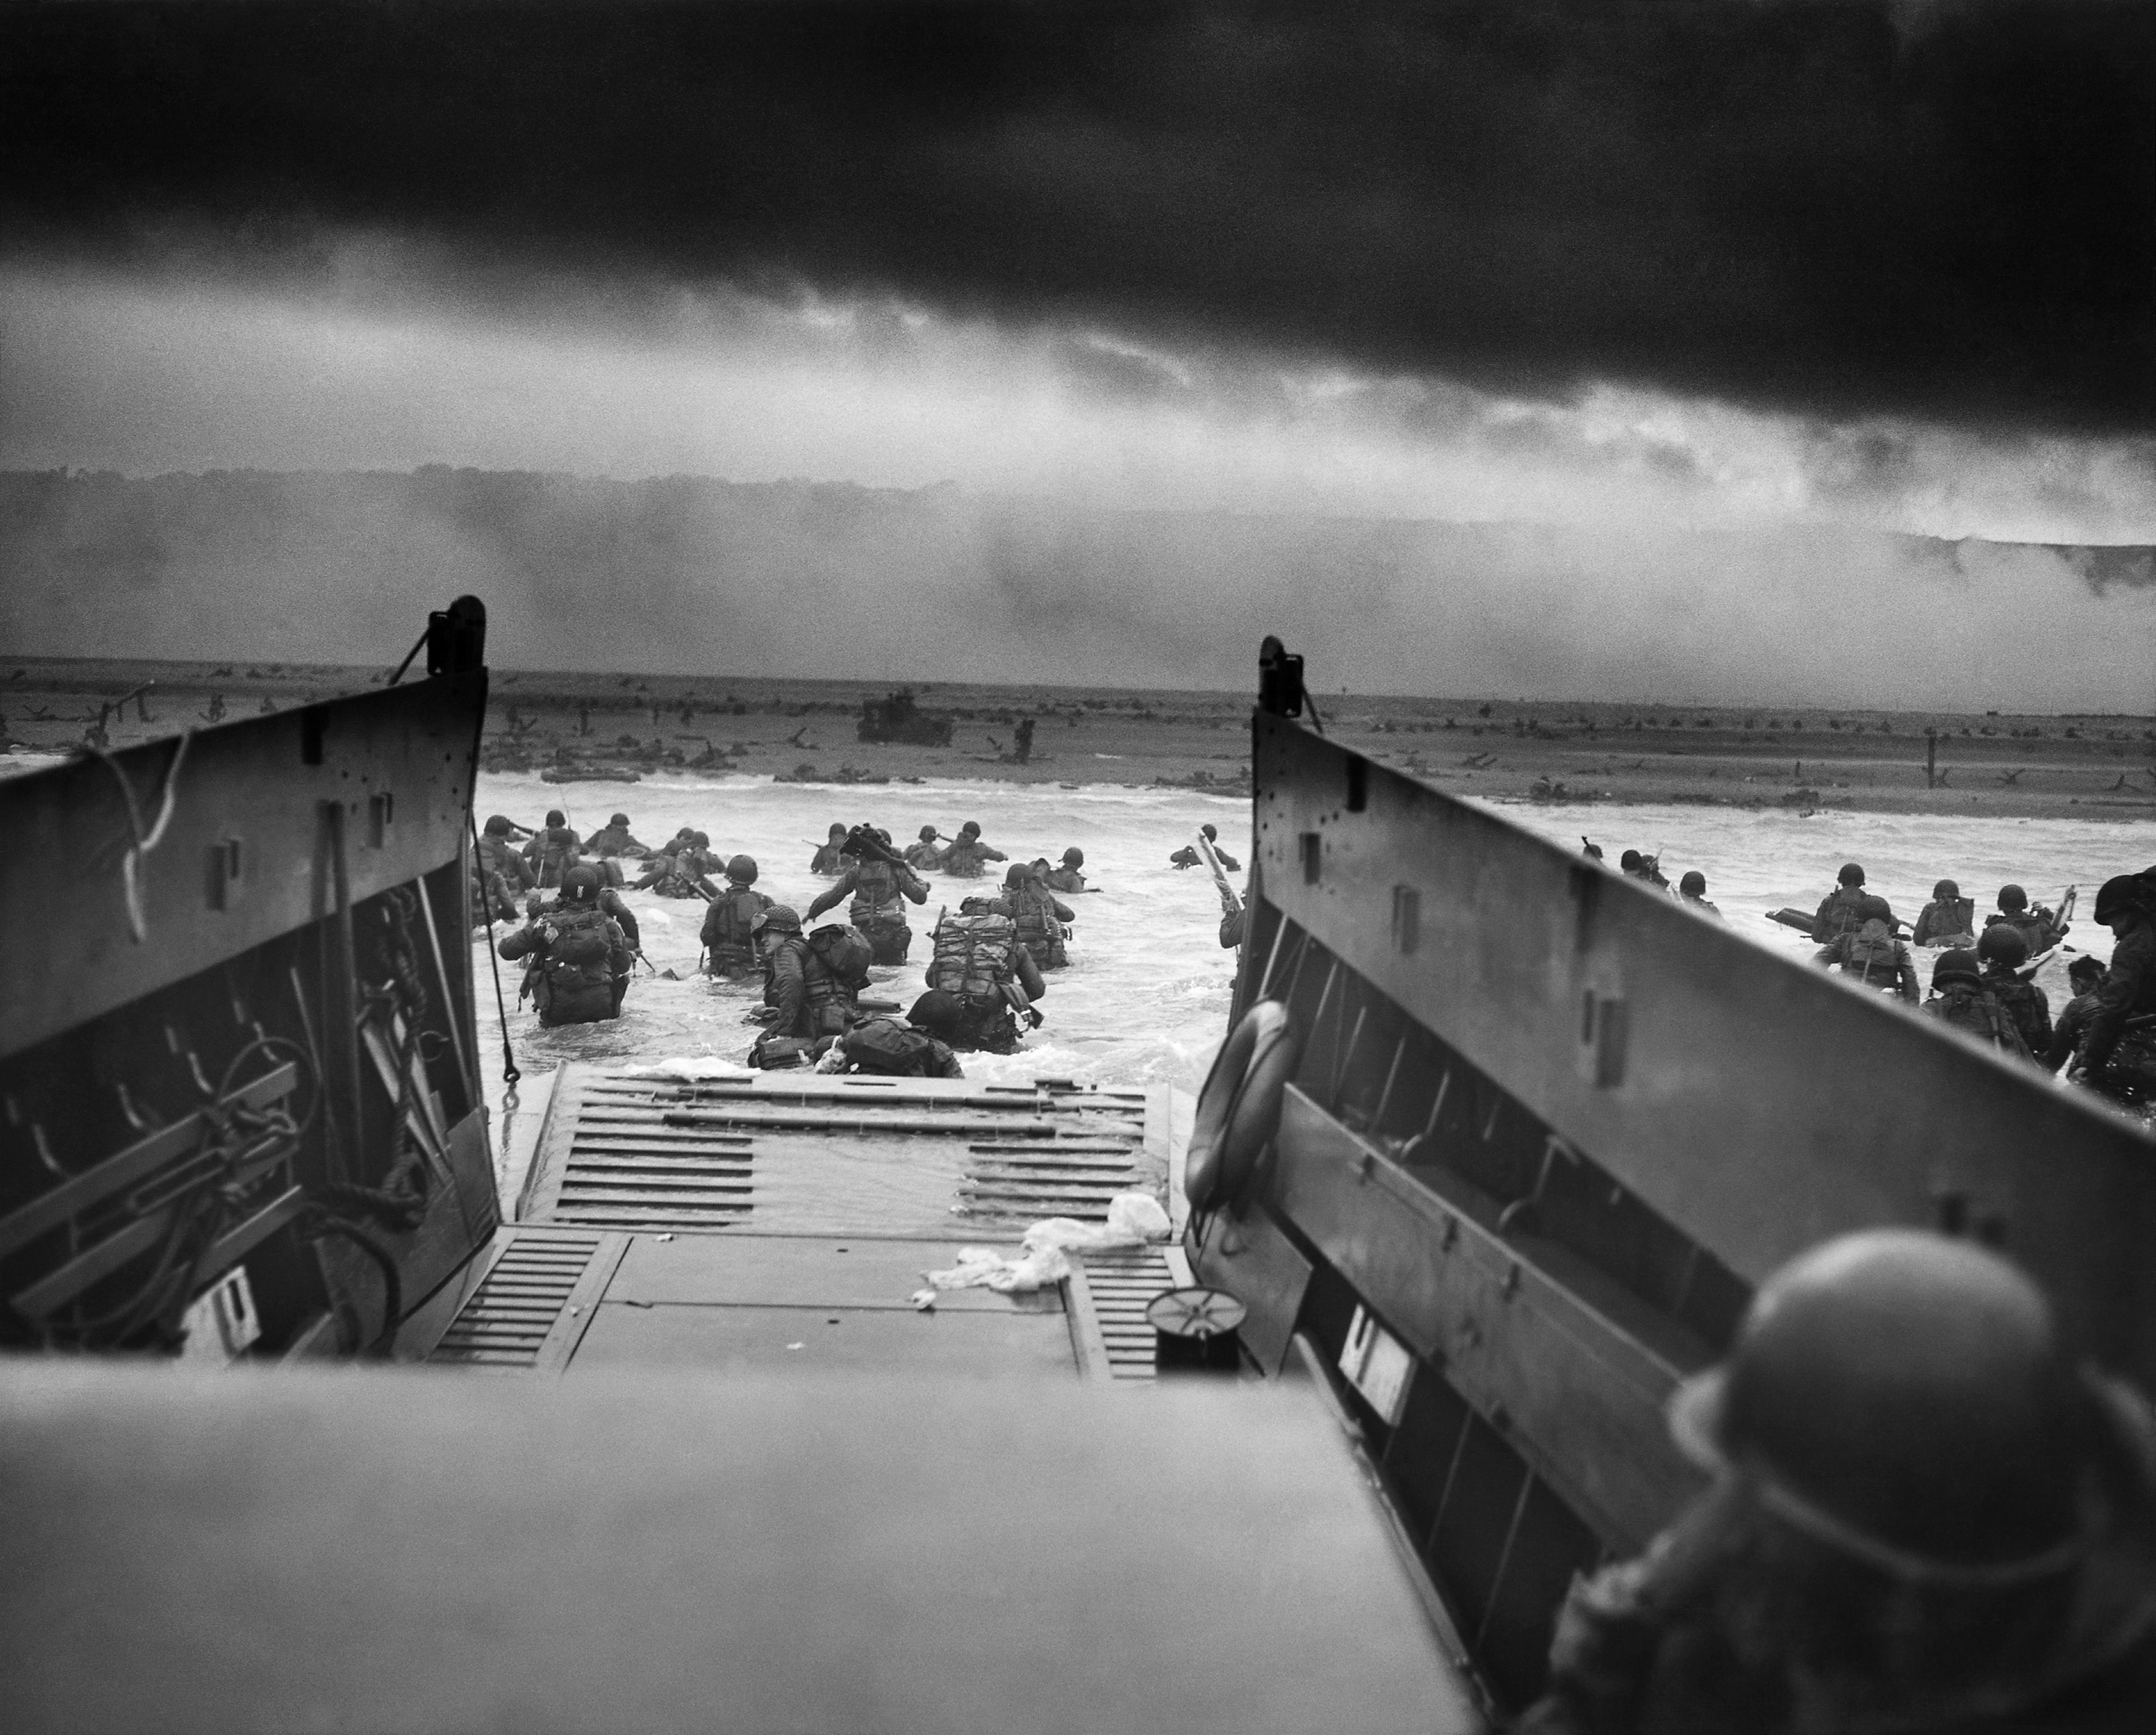 Photo Archive Lets You Download 4,300 High-Res Photographs of the Historic Normandy Invasion